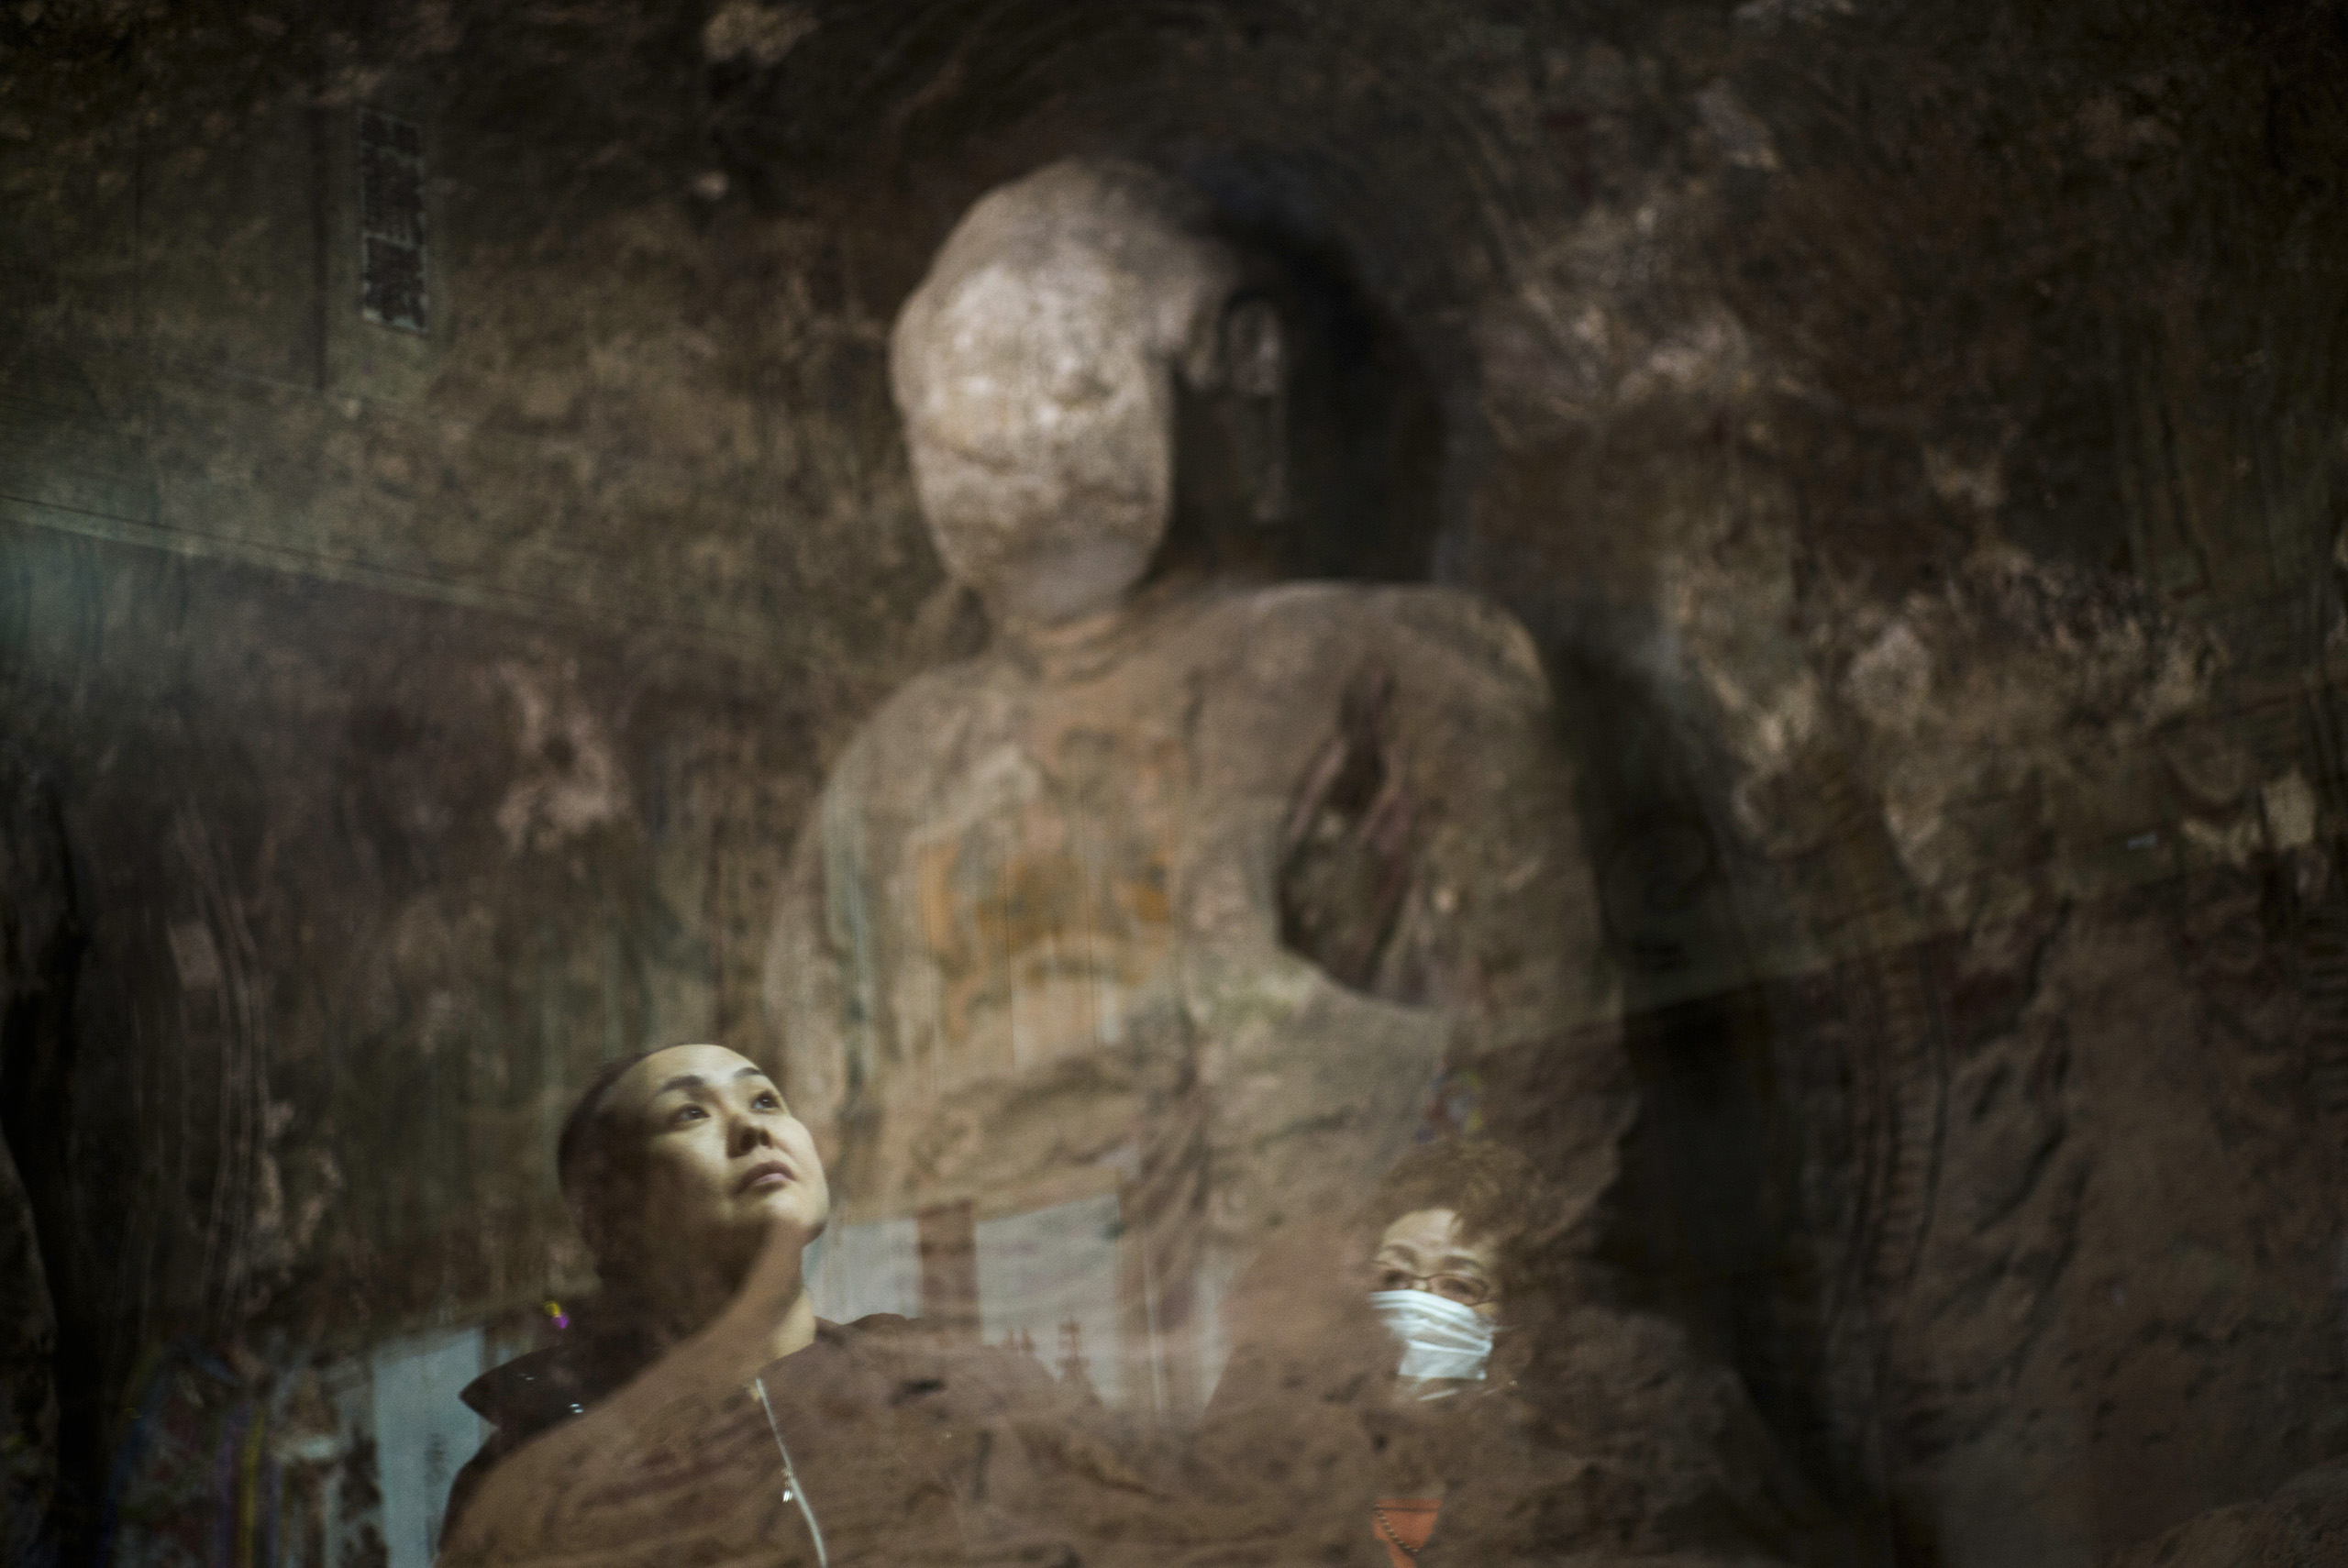 """Sachie Matsumoto, 43, and her mother look up at a Buddha statue called """"Daihisan no Sekibutsu,"""" or """"Stone Buddha statue of mountain of great sadness,"""" carved more than 1,000 years ago and situated inside the 20km exclusion zone, Osaka, Japan, March 6, 2016. Sachie would come here as a child."""